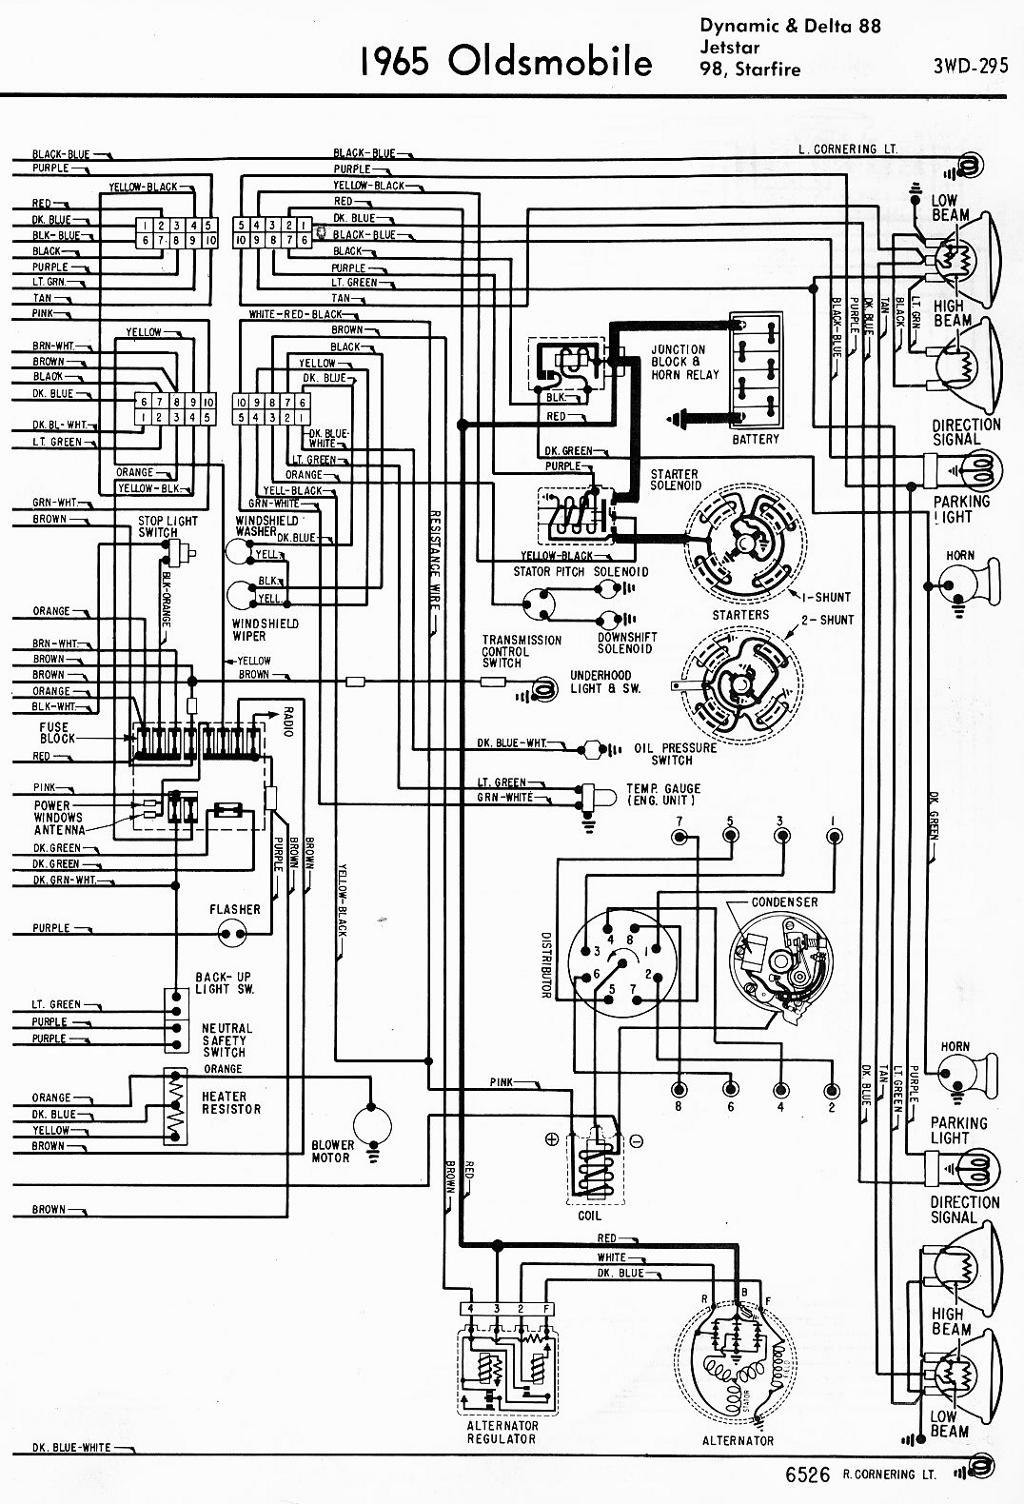 1995 Oldsmobile Silhouette Wiring Diagram Detailed Schematics 88 Electrical Diagrams Chevy Monte Carlo